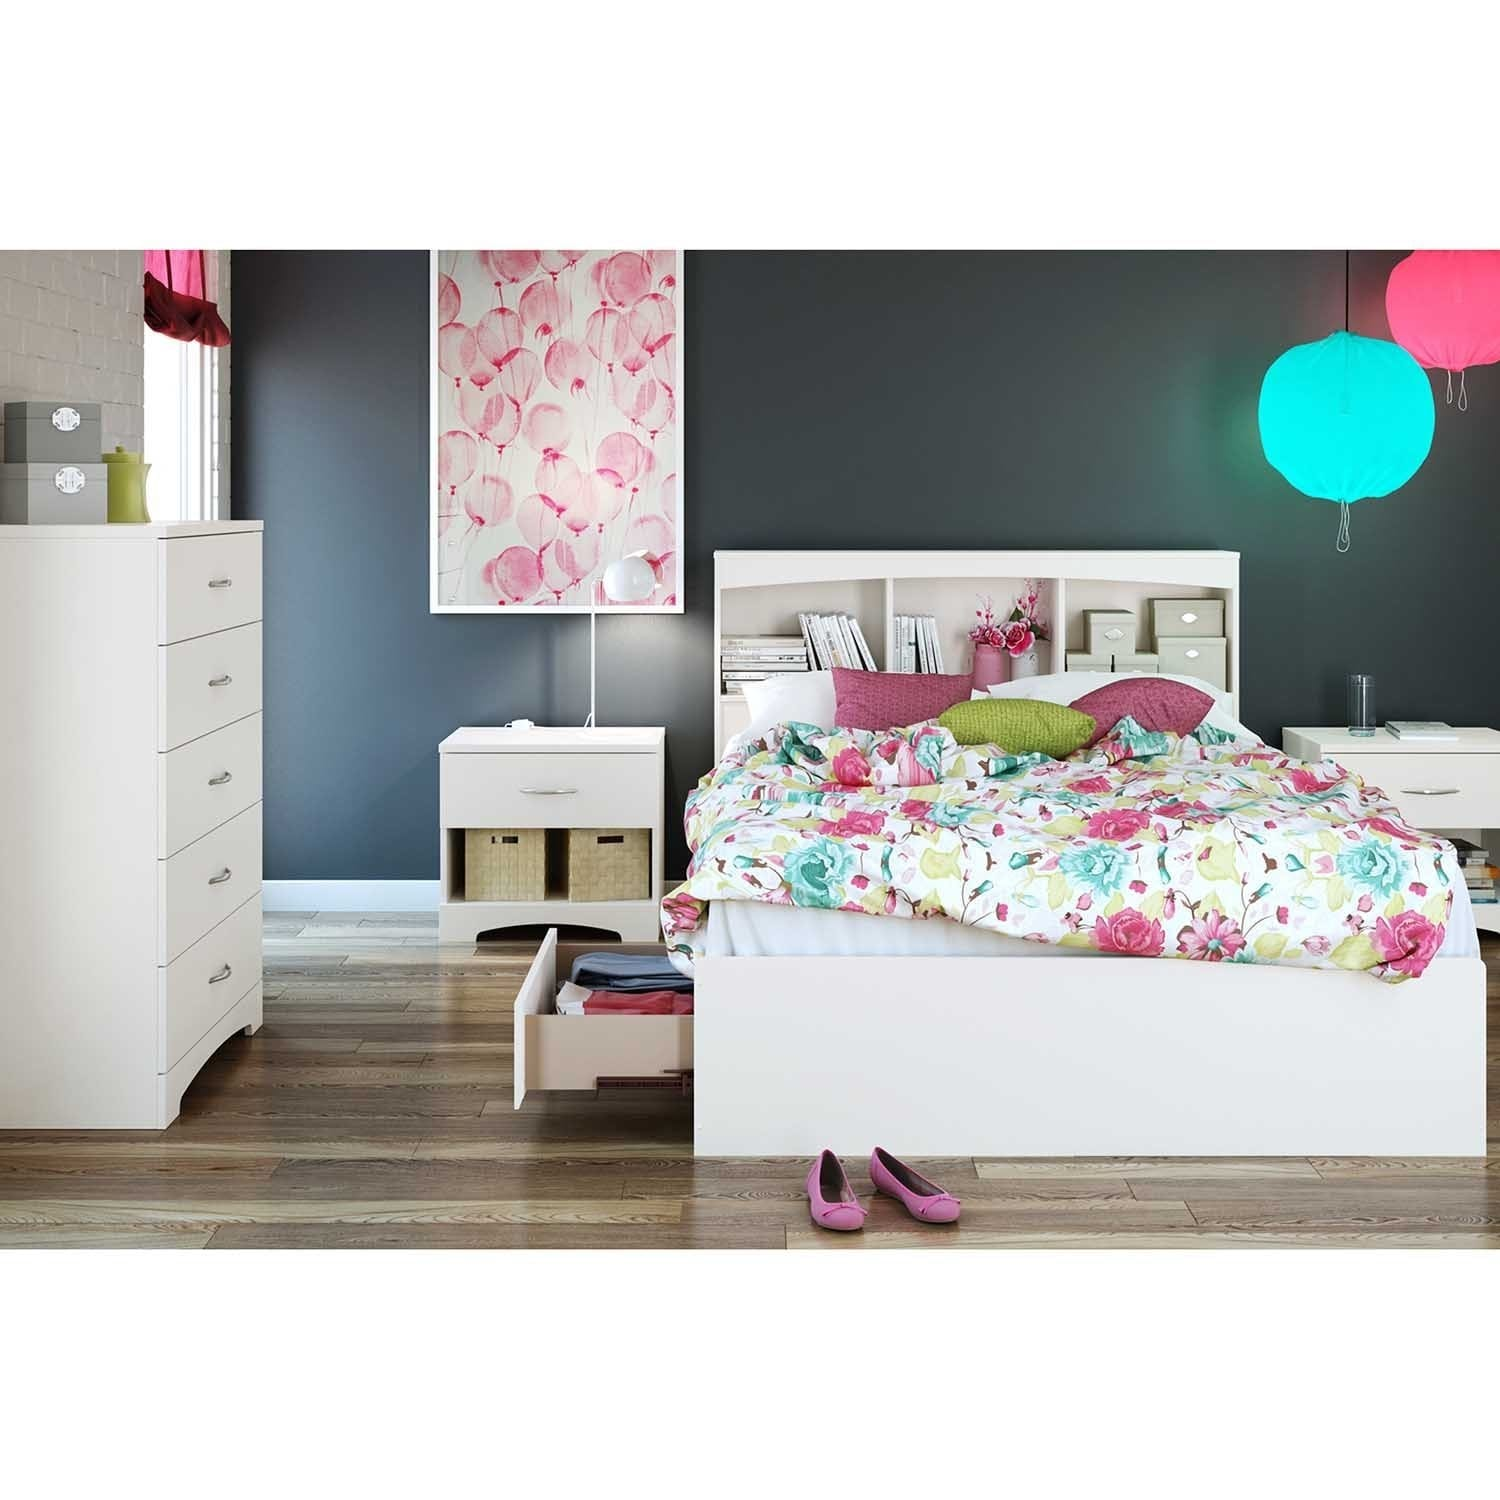 South Shore Step One Full Size Mates Bed Frame With Drawers And Bookcase Headboard Set